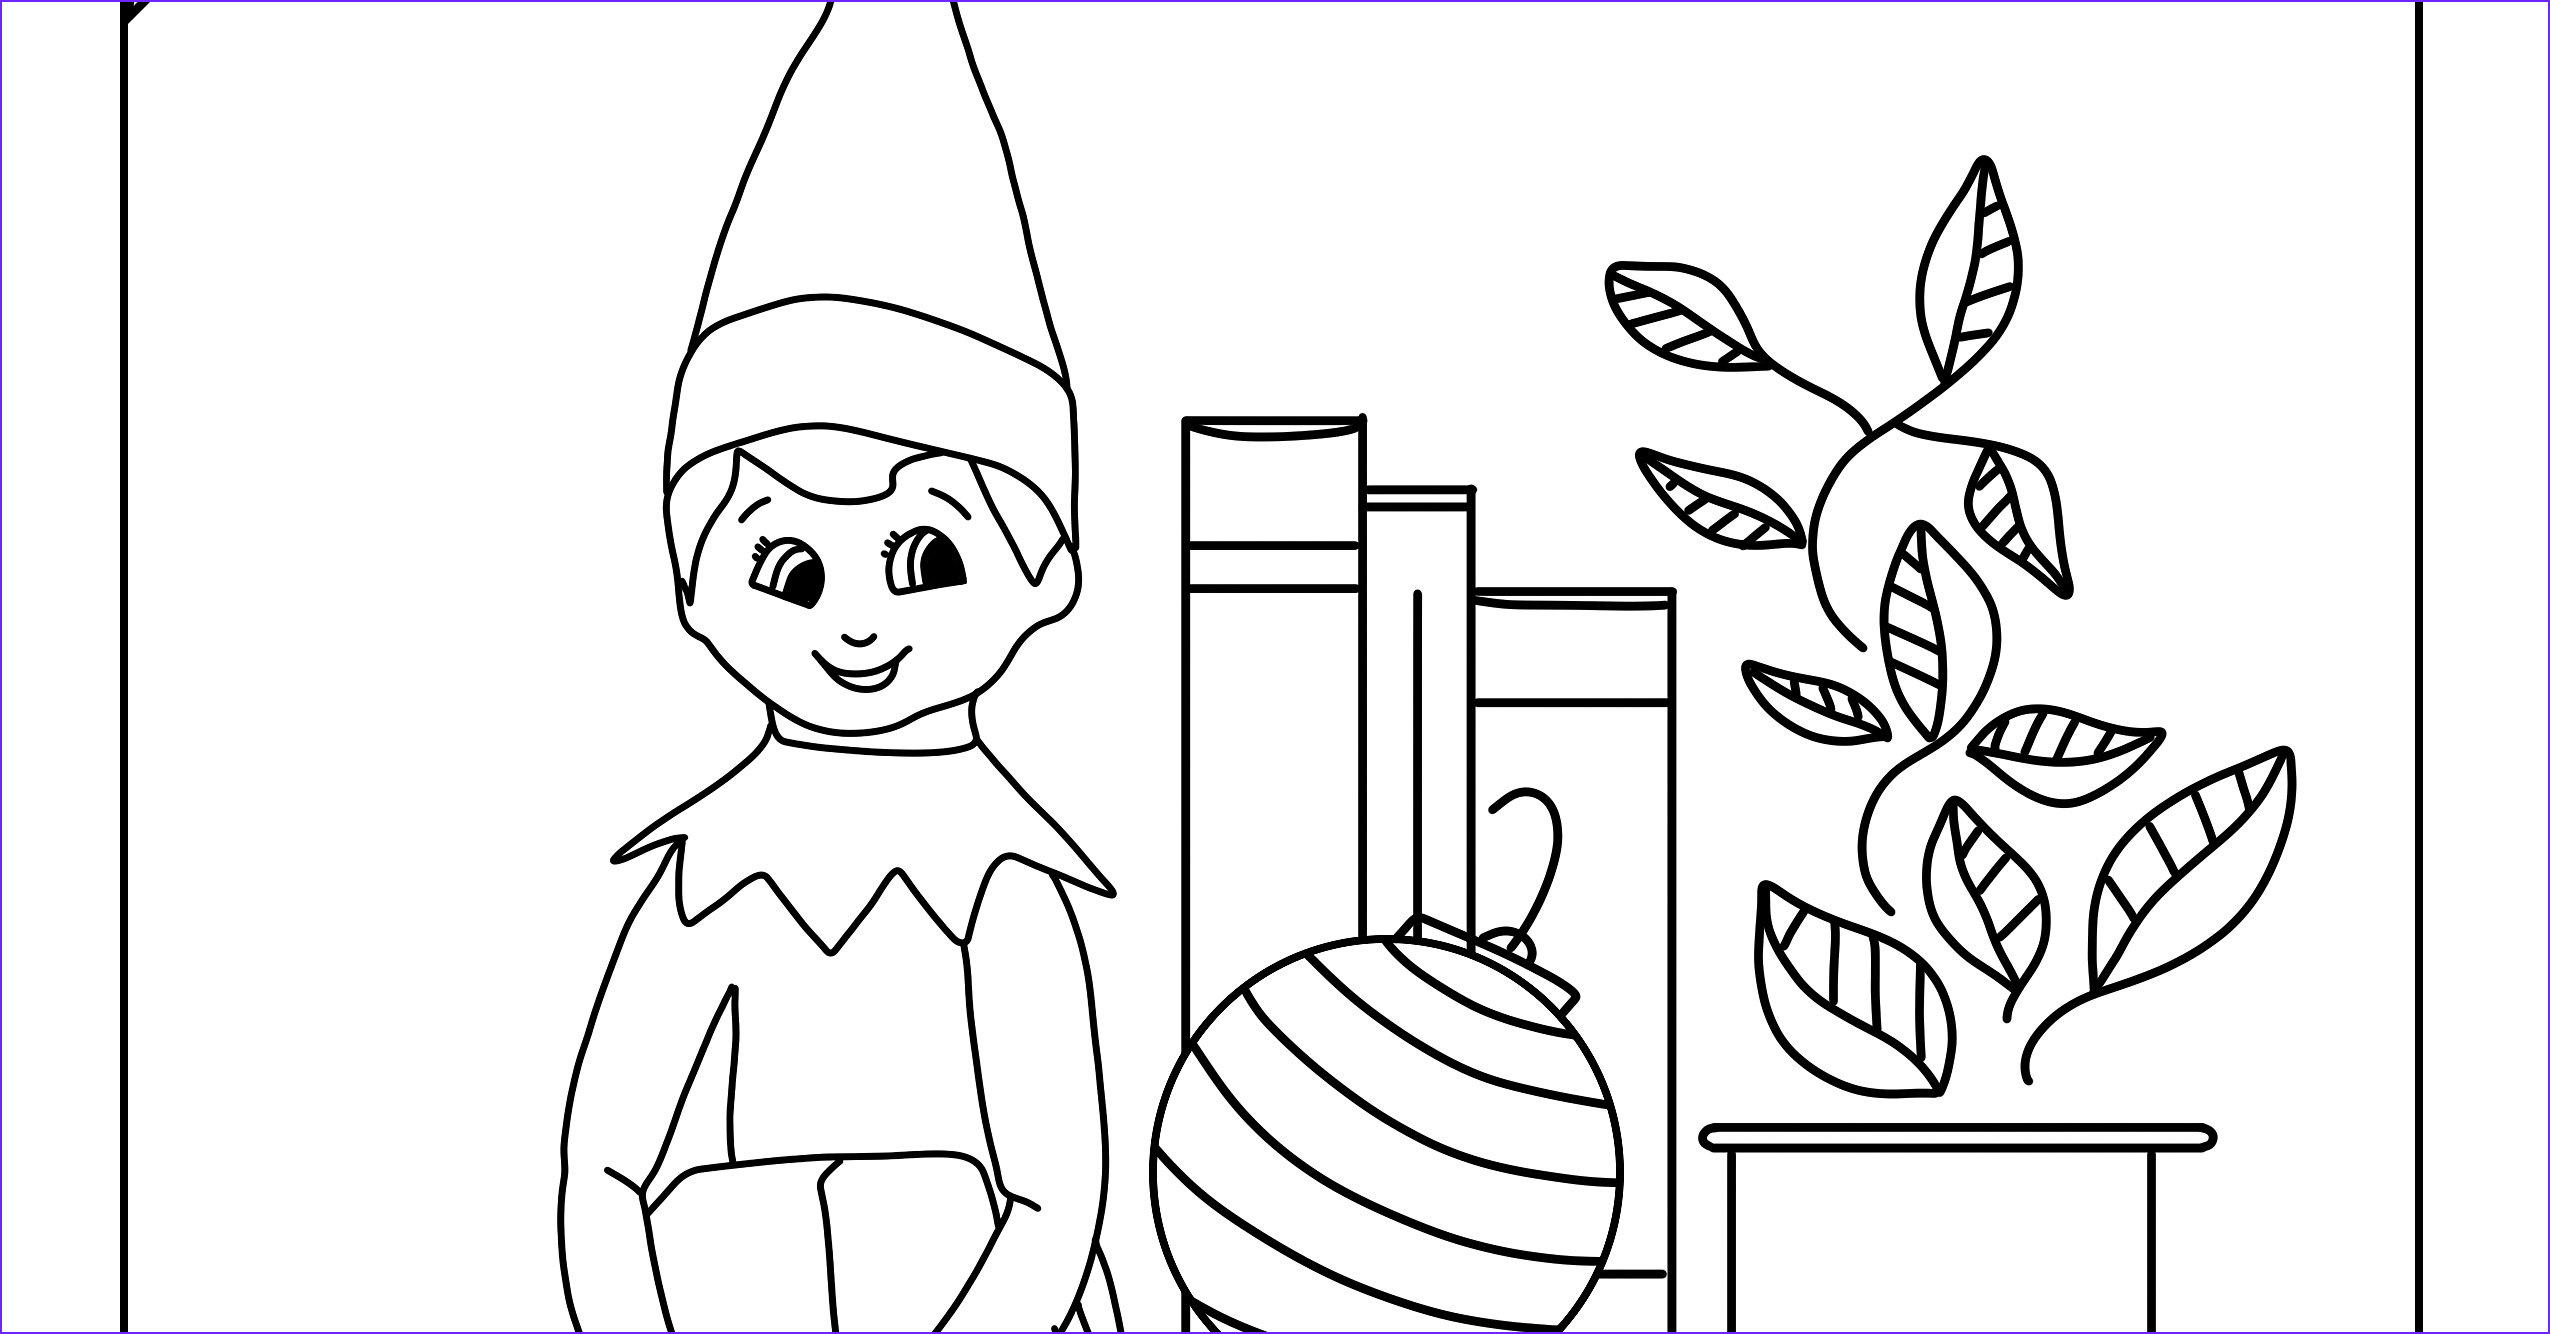 Elf On the Shelf Coloring Sheet Unique Stock [28 ] Elf the Shelf Coloring Pages Printable